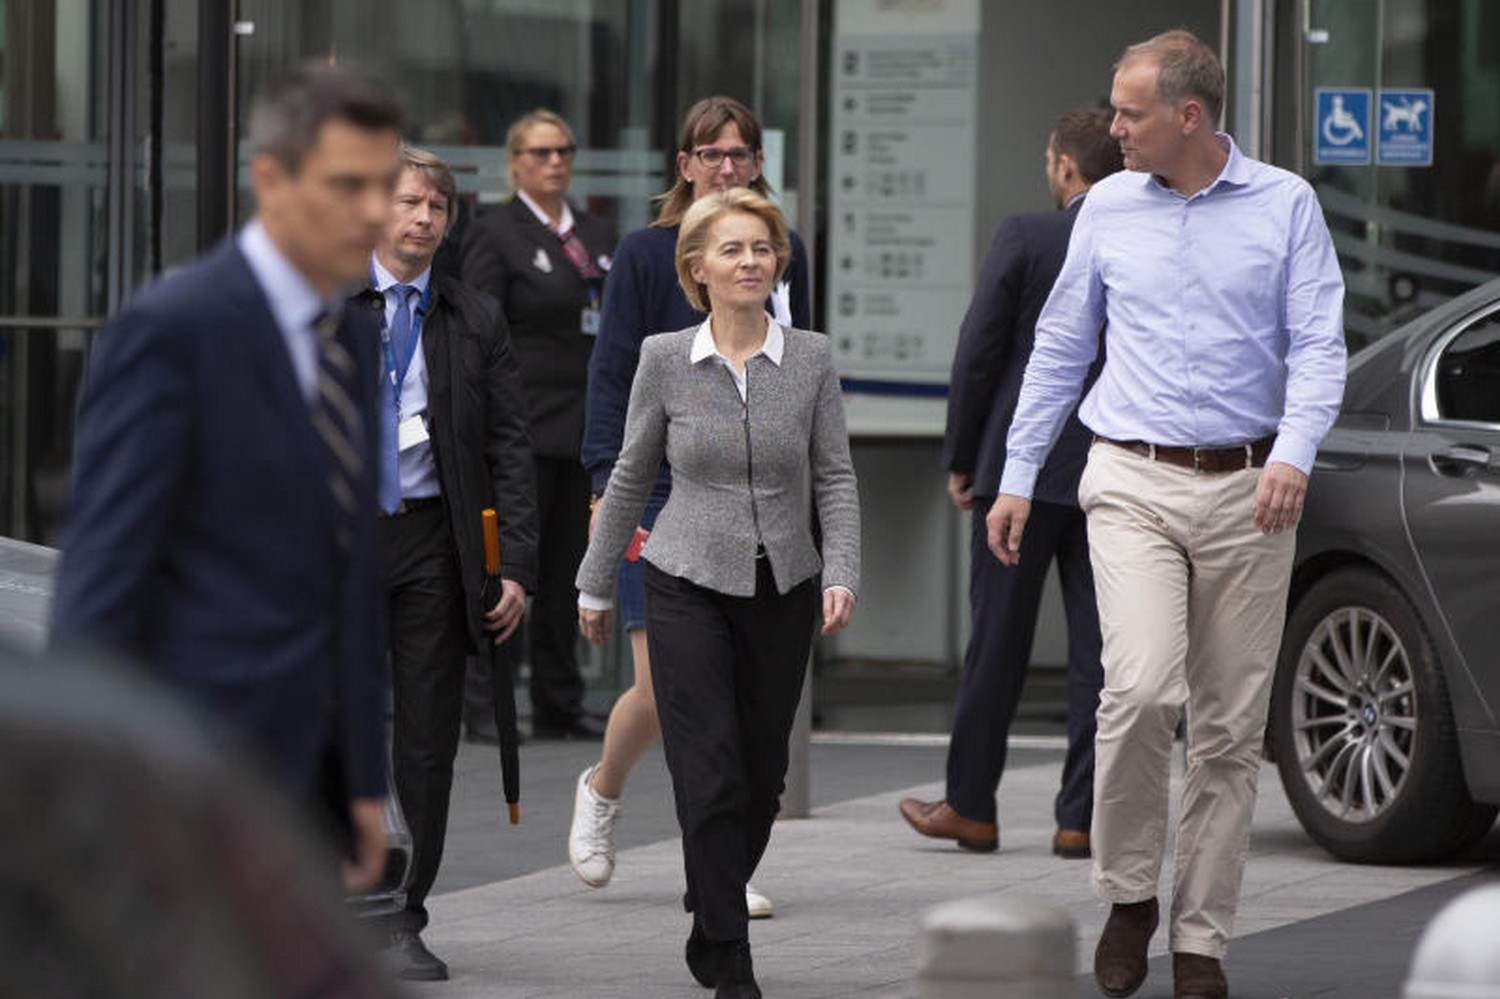 Incoming European Commission president Ursula von der Leyen (centre). Her influence comes in deciding, after the elaborate horse trading, which portfolio goes to whom.